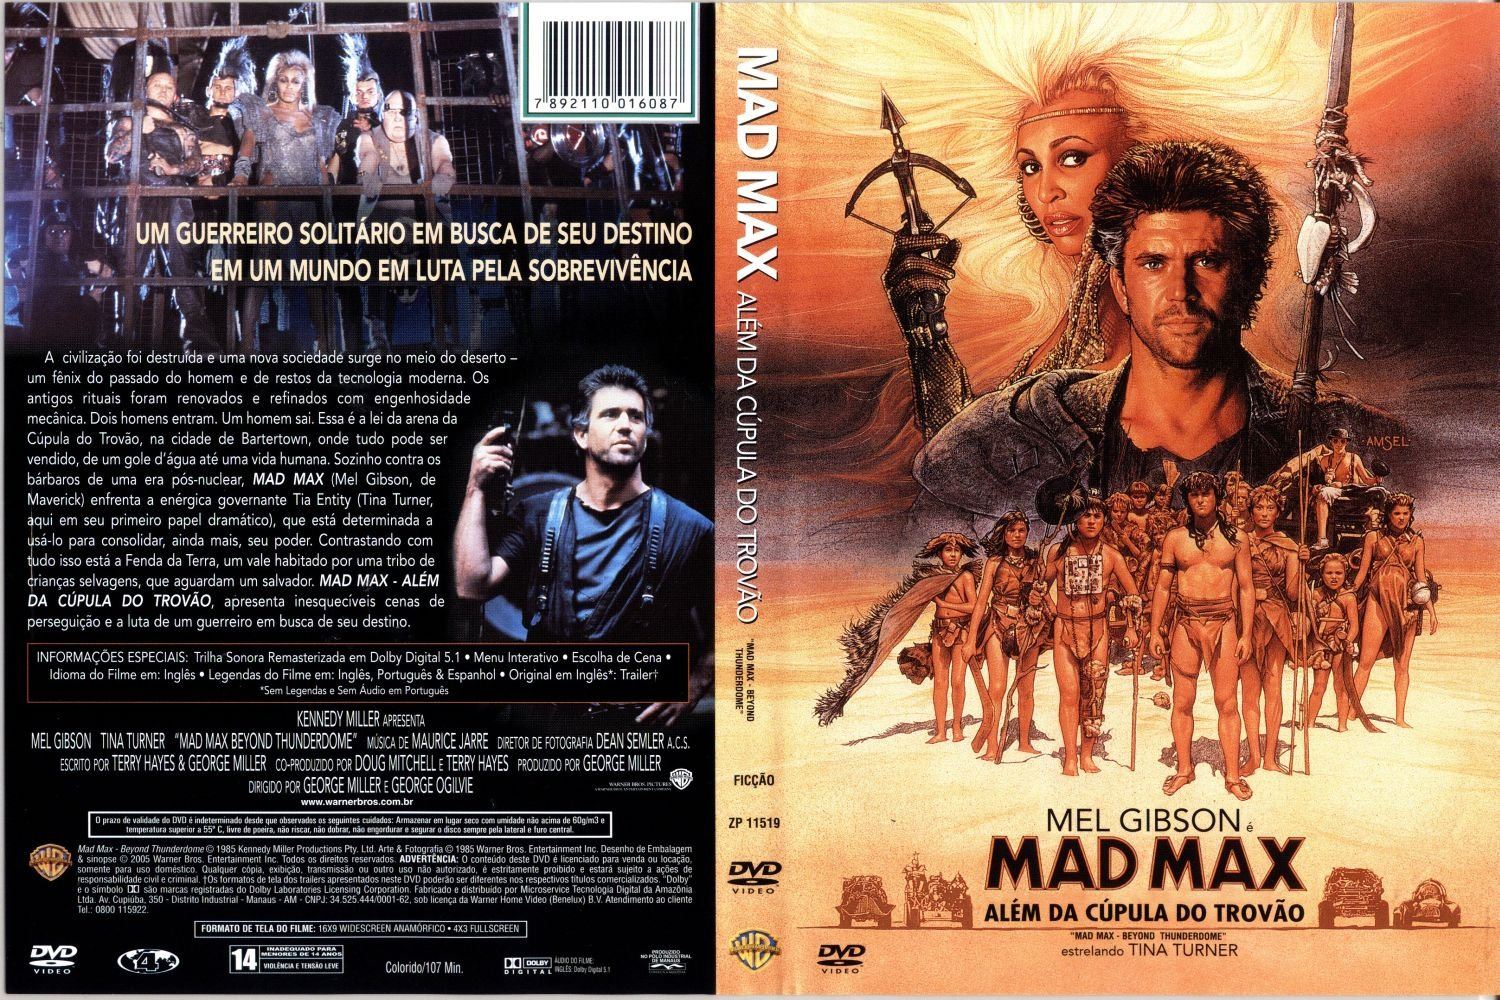 Mad Max 1-3 (1979-1985) 1080p BluRay x264 Dual Audio [English 5.1 ...